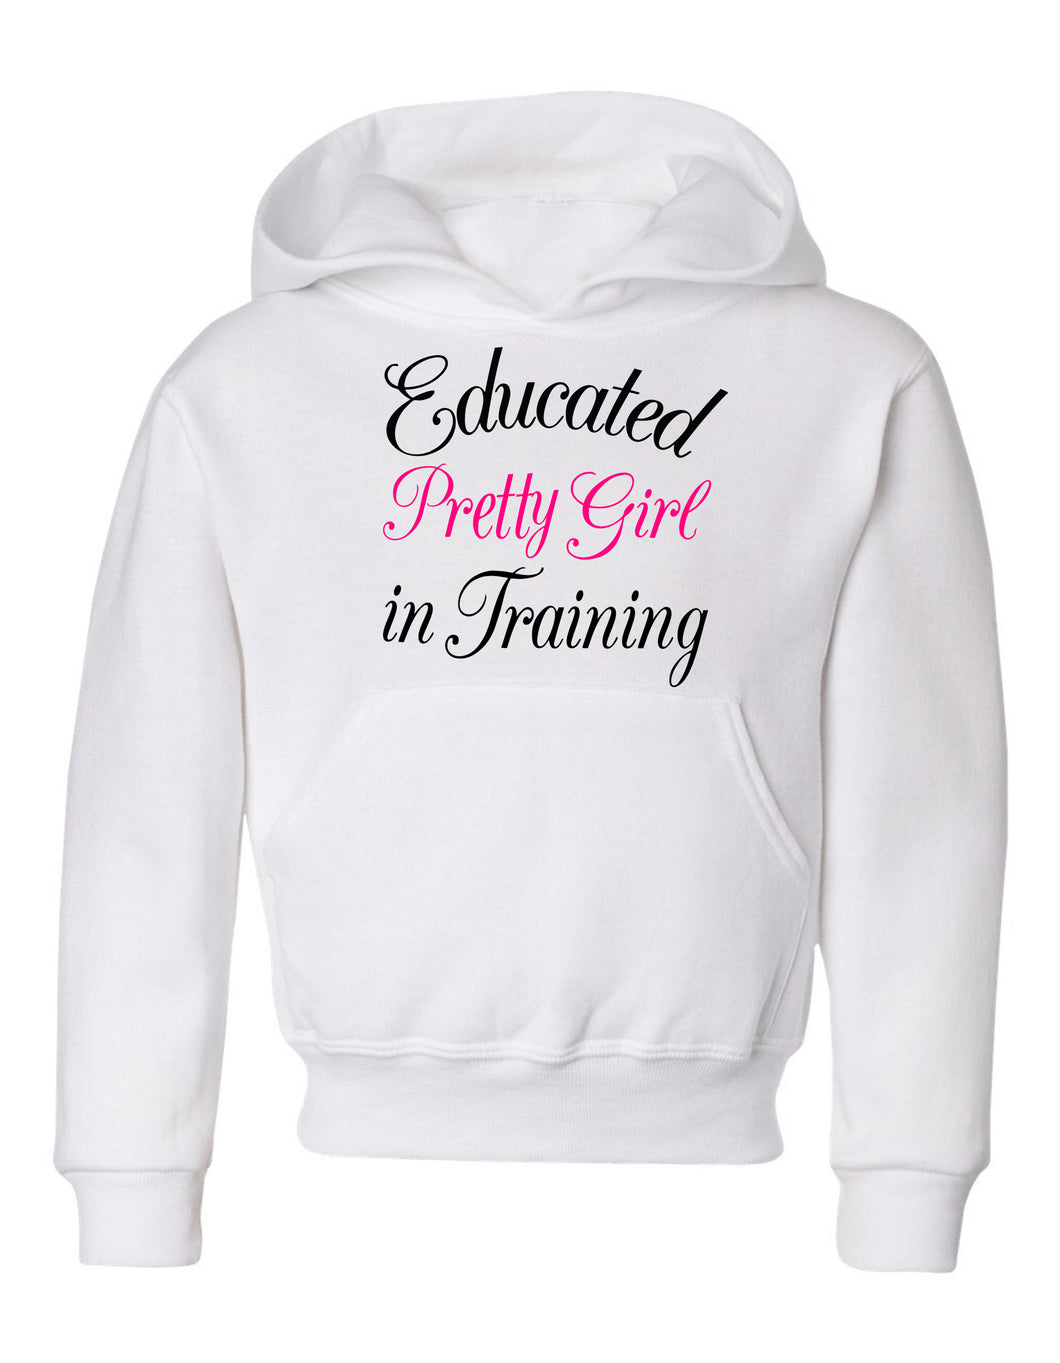 Educated Pretty Girl in Training hoodie